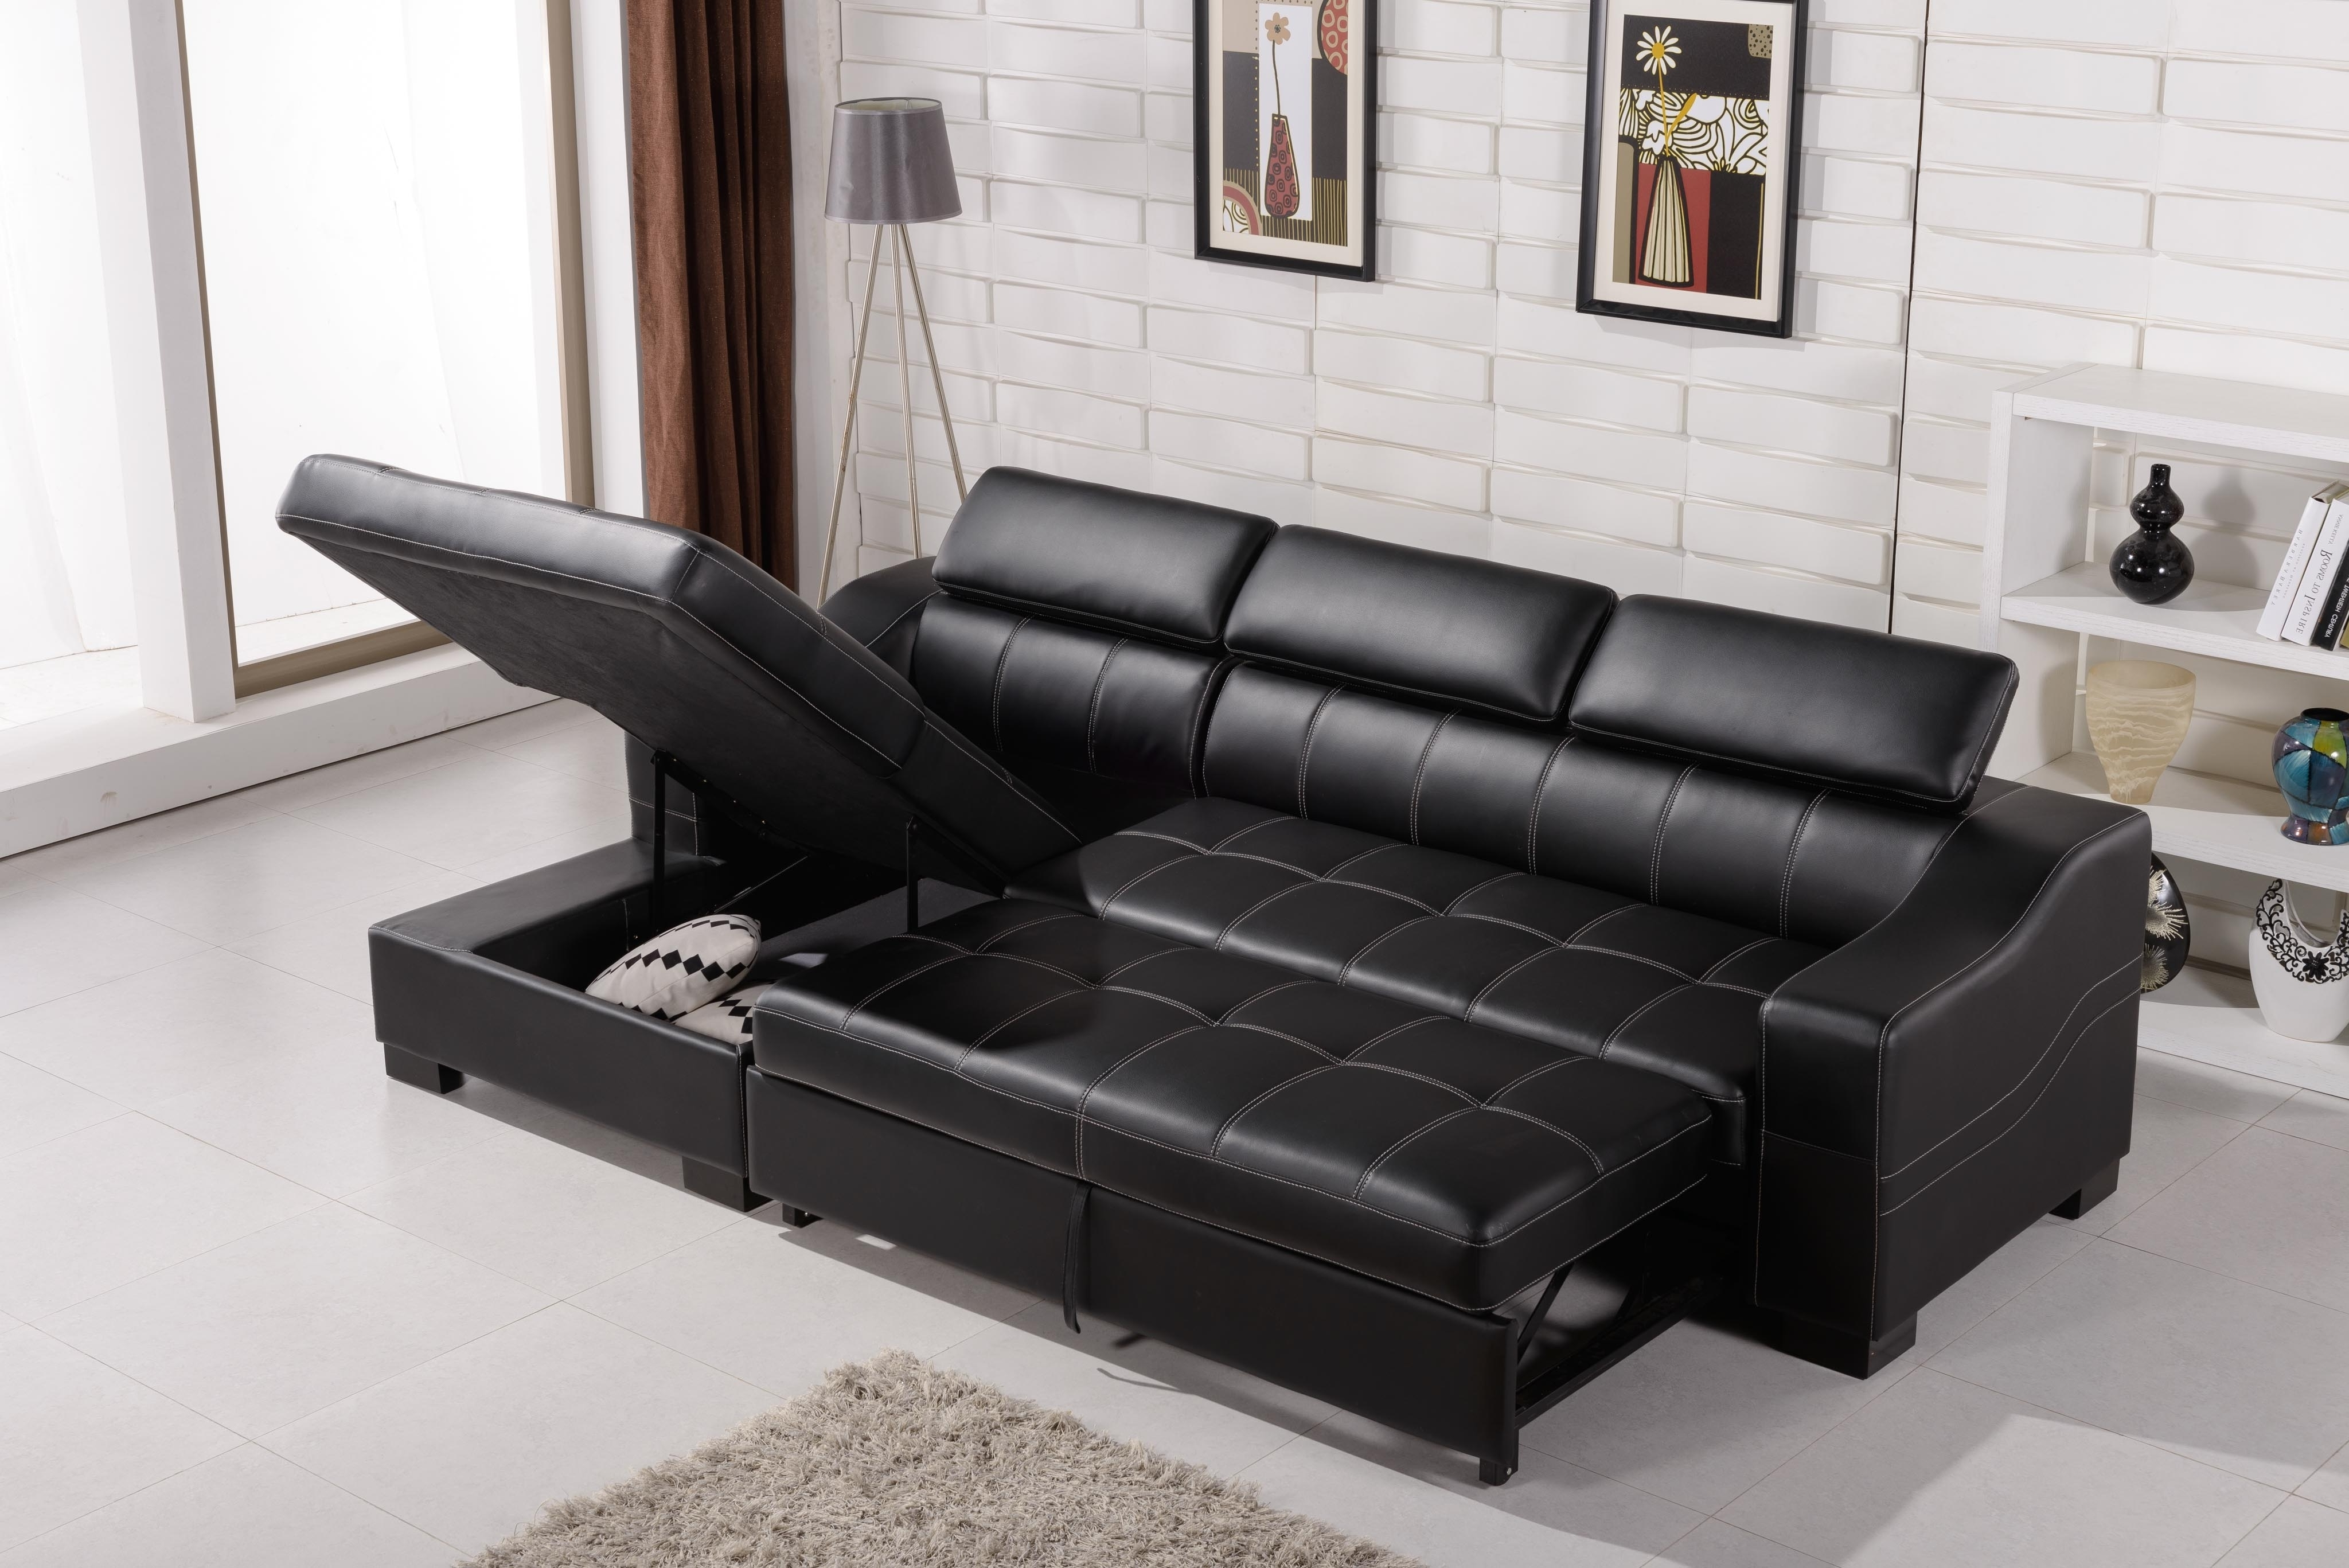 Current Sectional Sofas That Turn Into Beds With Regard To Sectional Sofa That Turns Into A Bed • Sofa Bed (View 2 of 15)